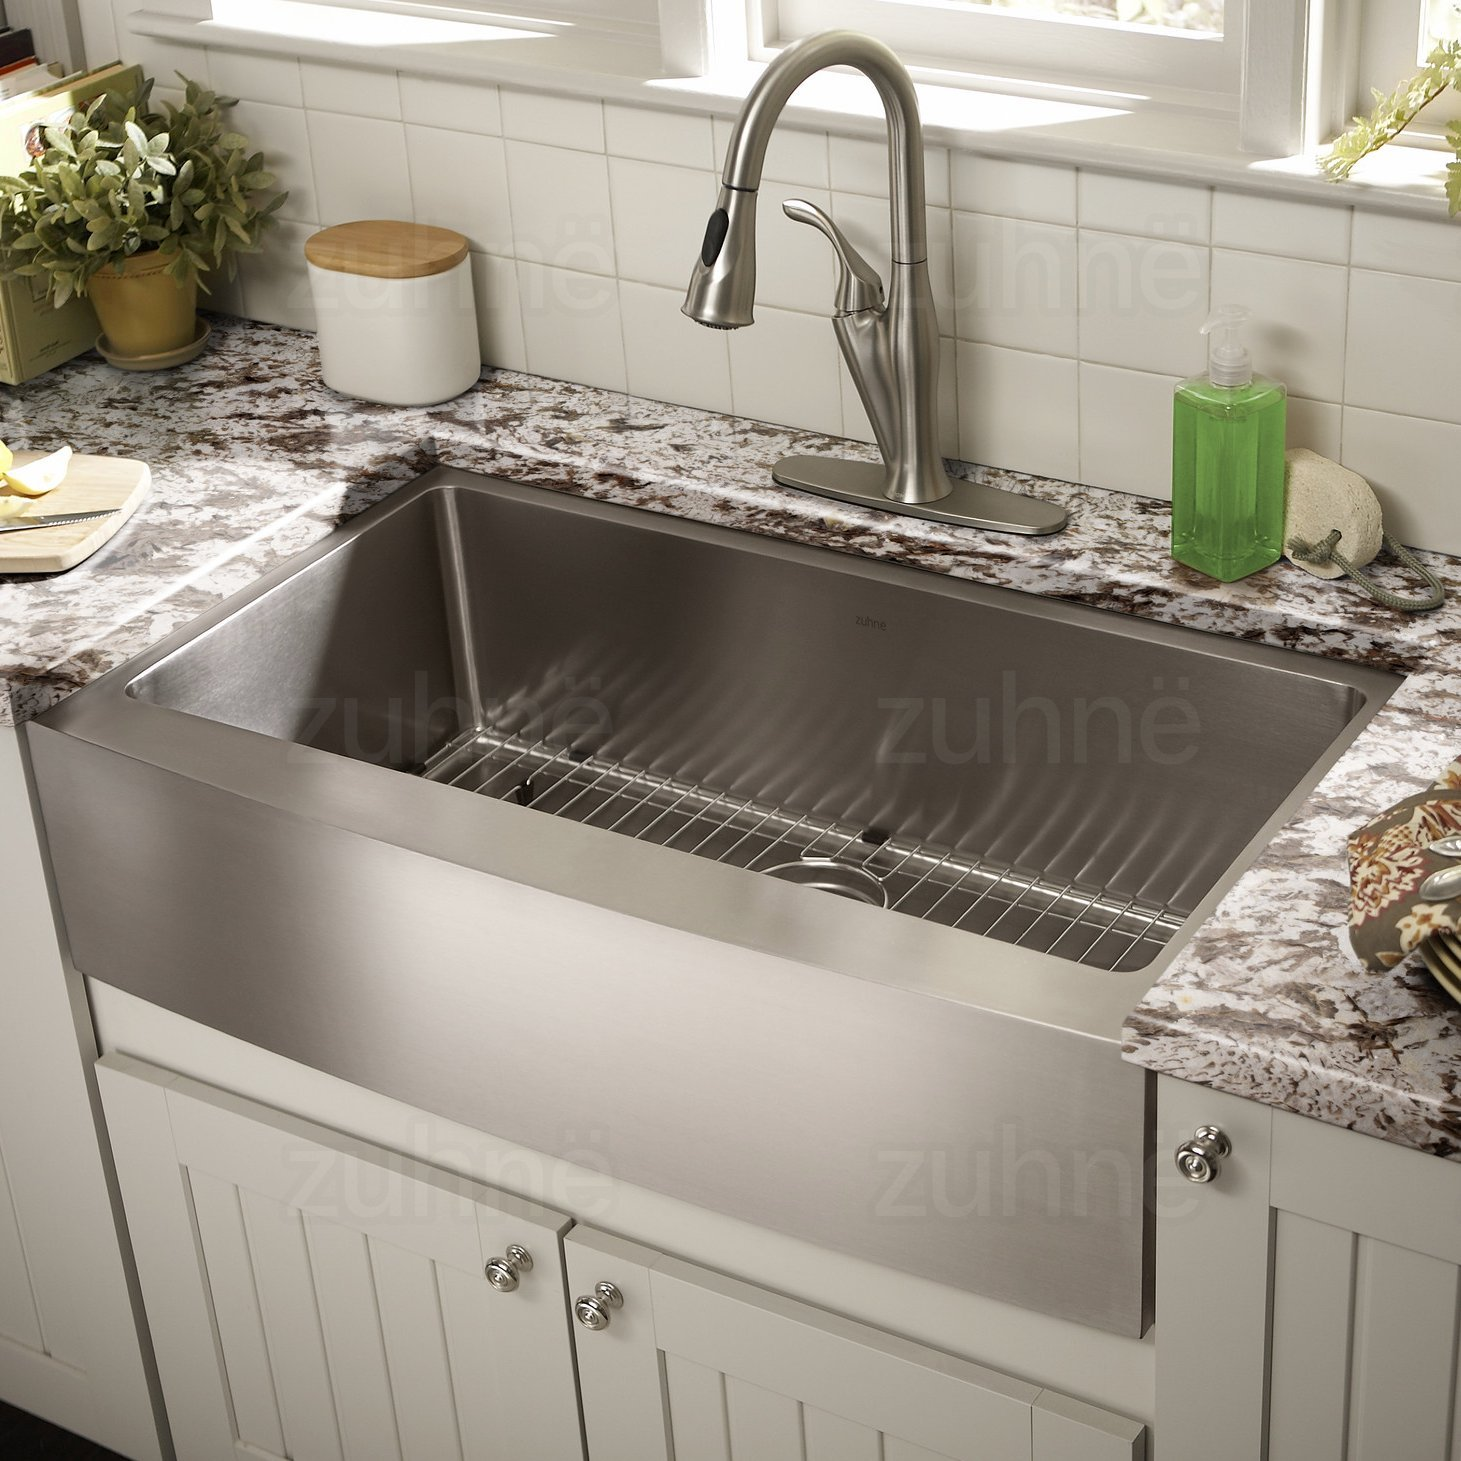 2 sinks in kitchen best stainless steel sinks 2018 list of sinks that doesn 3820